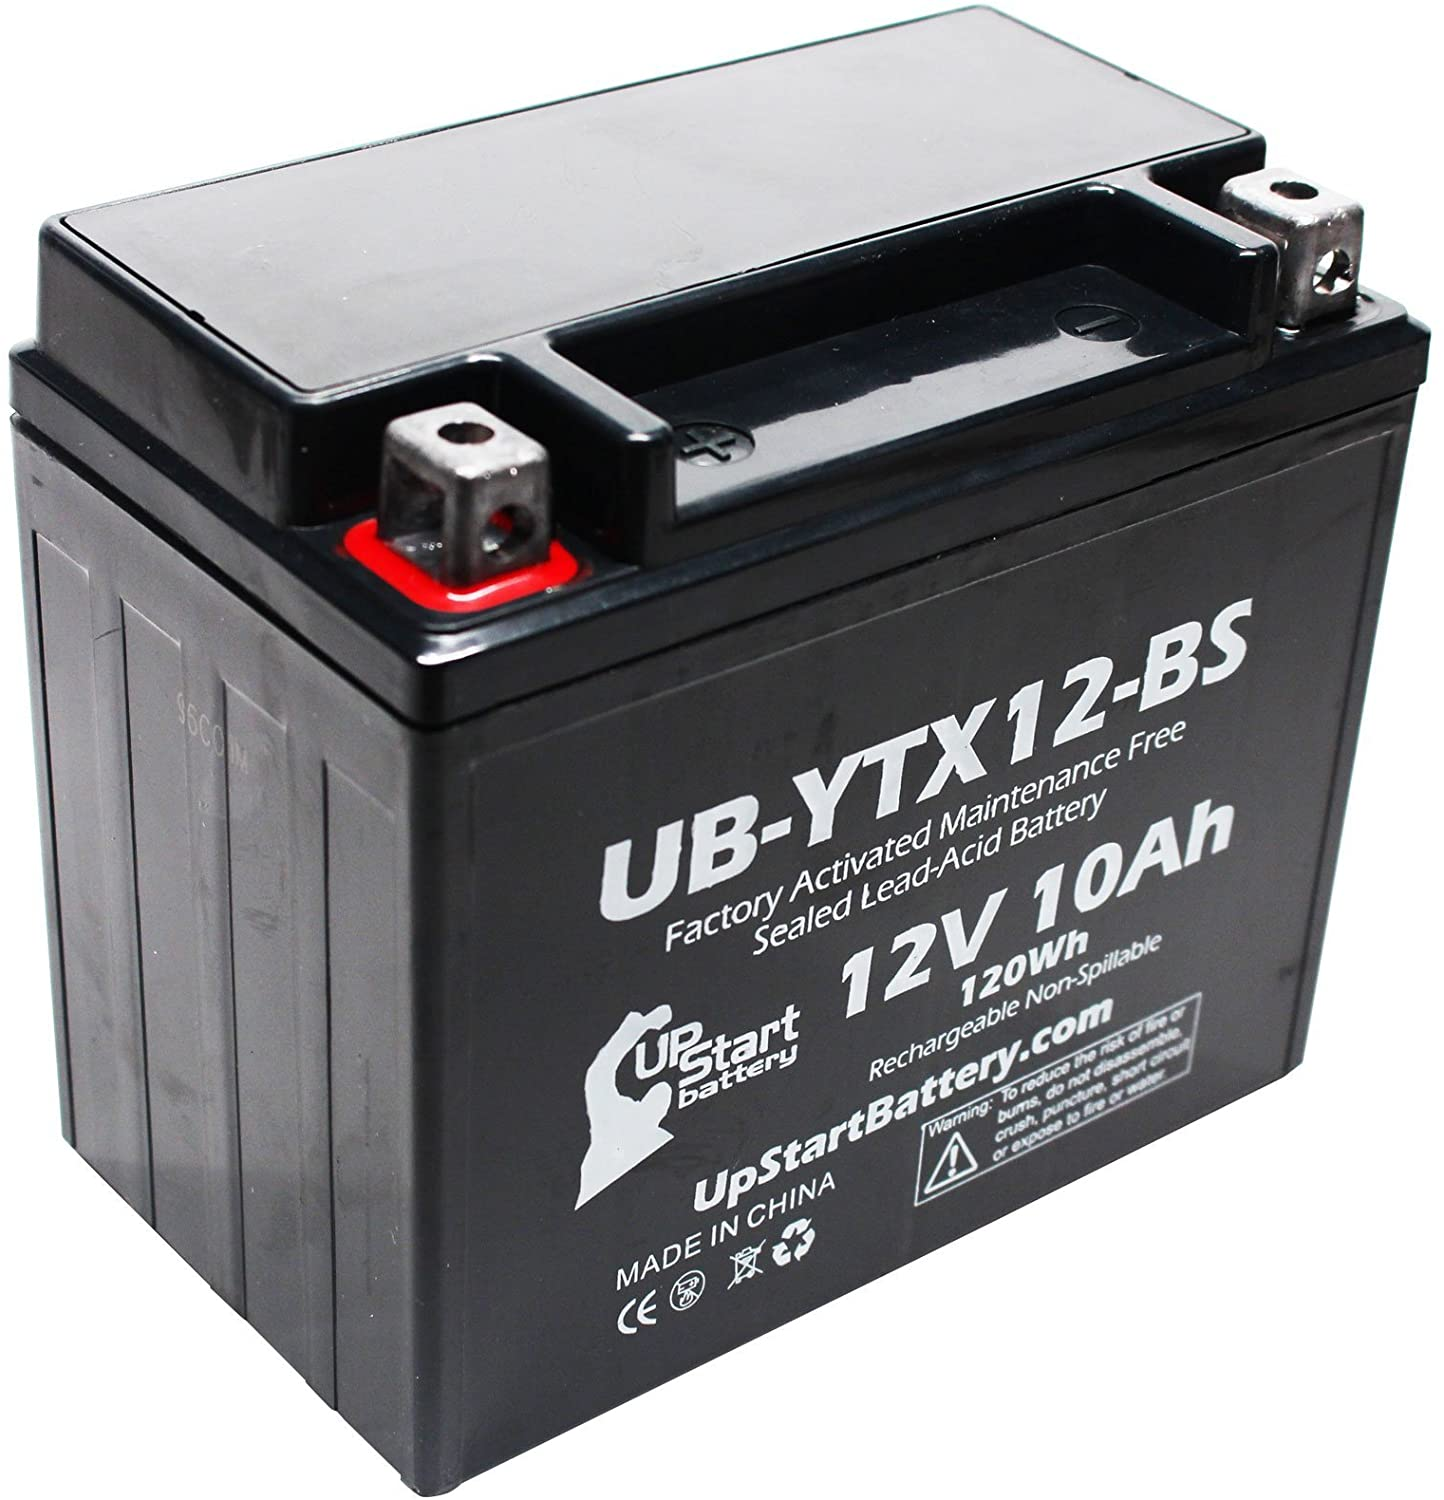 Replacement for 1988 Honda TRX200SX FourTrax 200 CC Factory Activated, Maintenance Free, ATV Battery - 12V, 10Ah, UB-YTX12-BS